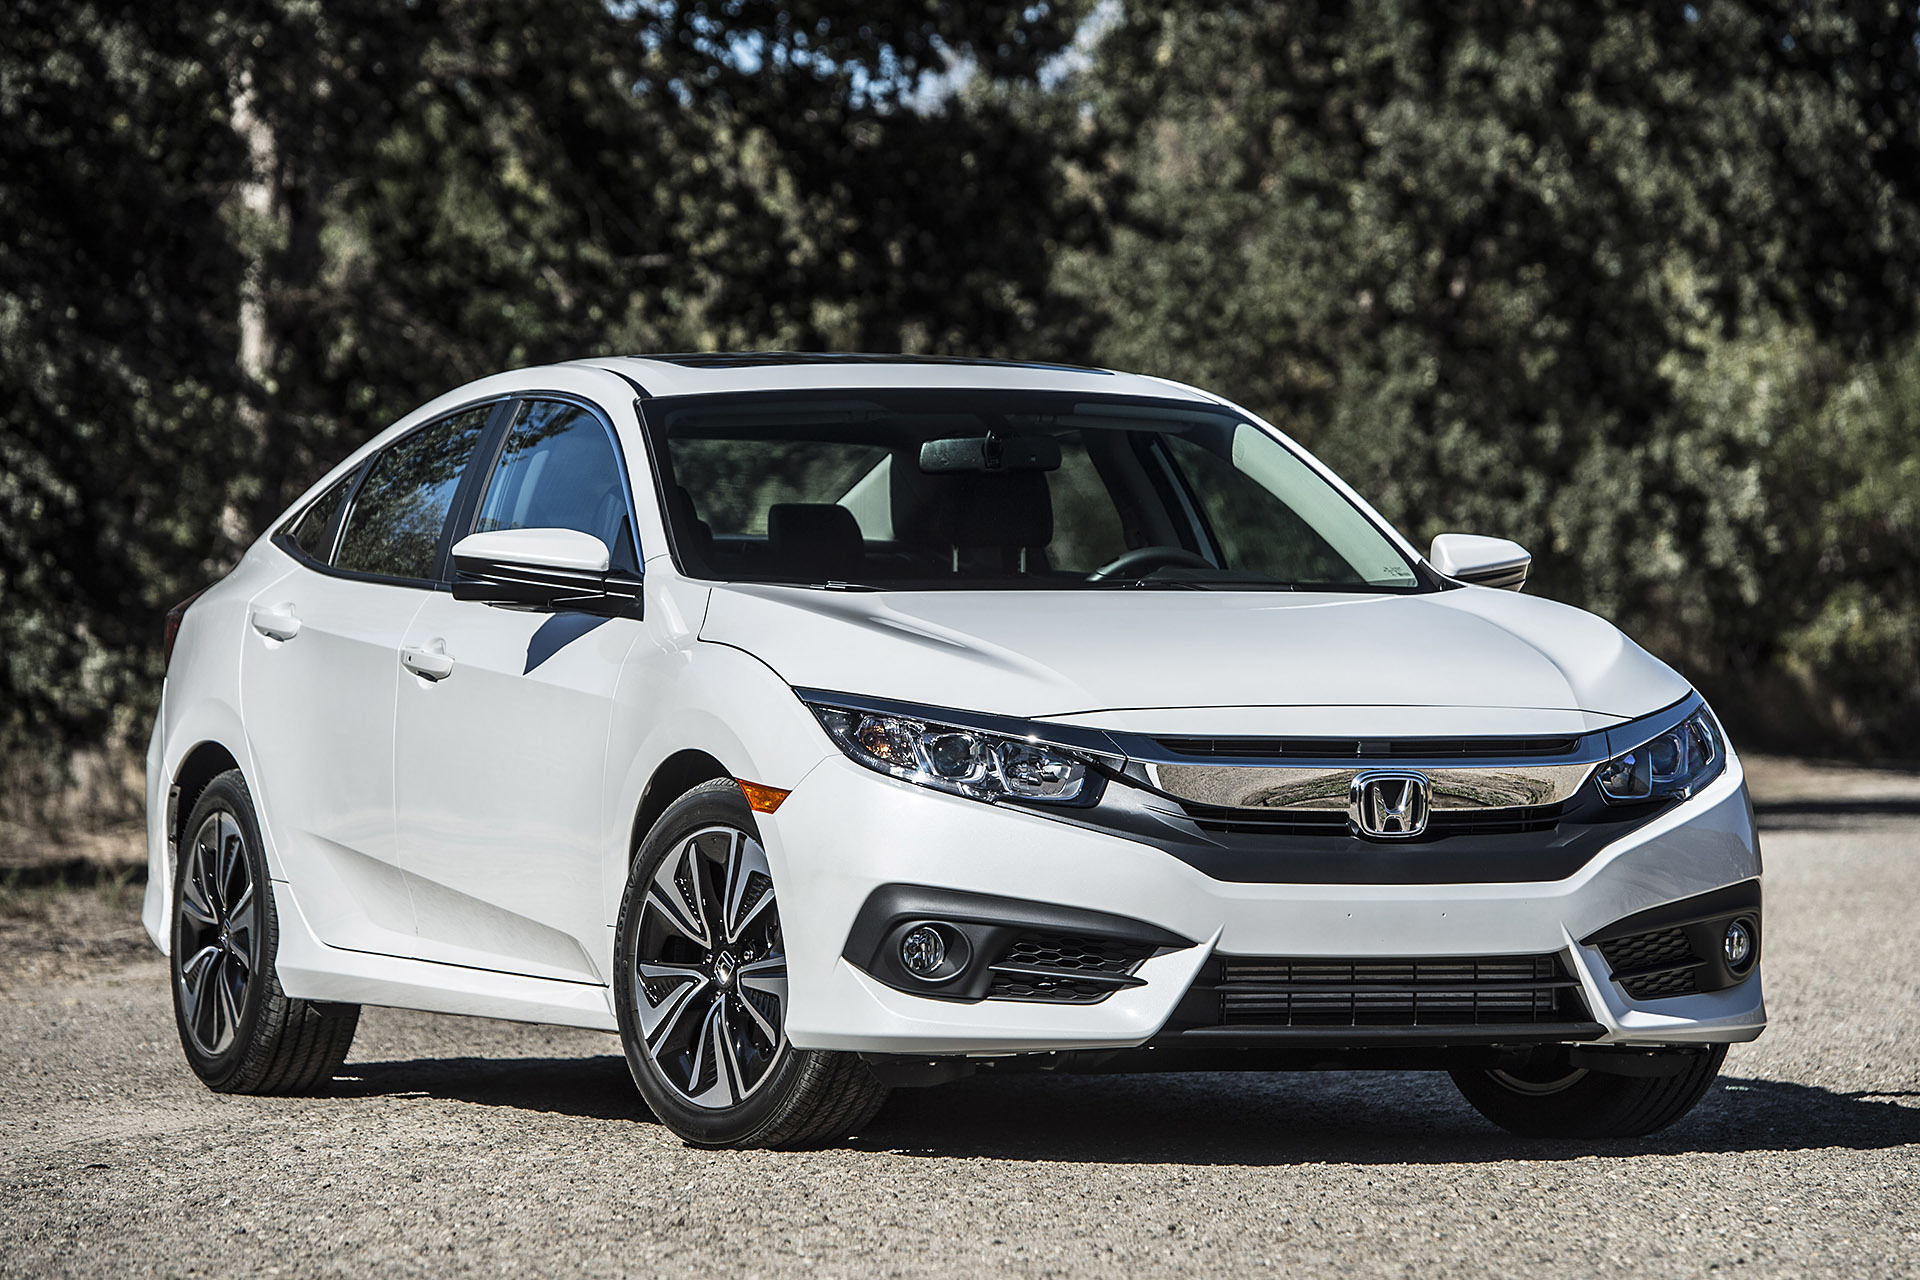 New 2016 Honda Civic Two Engine Types 1 - Muscle Cars Zone!